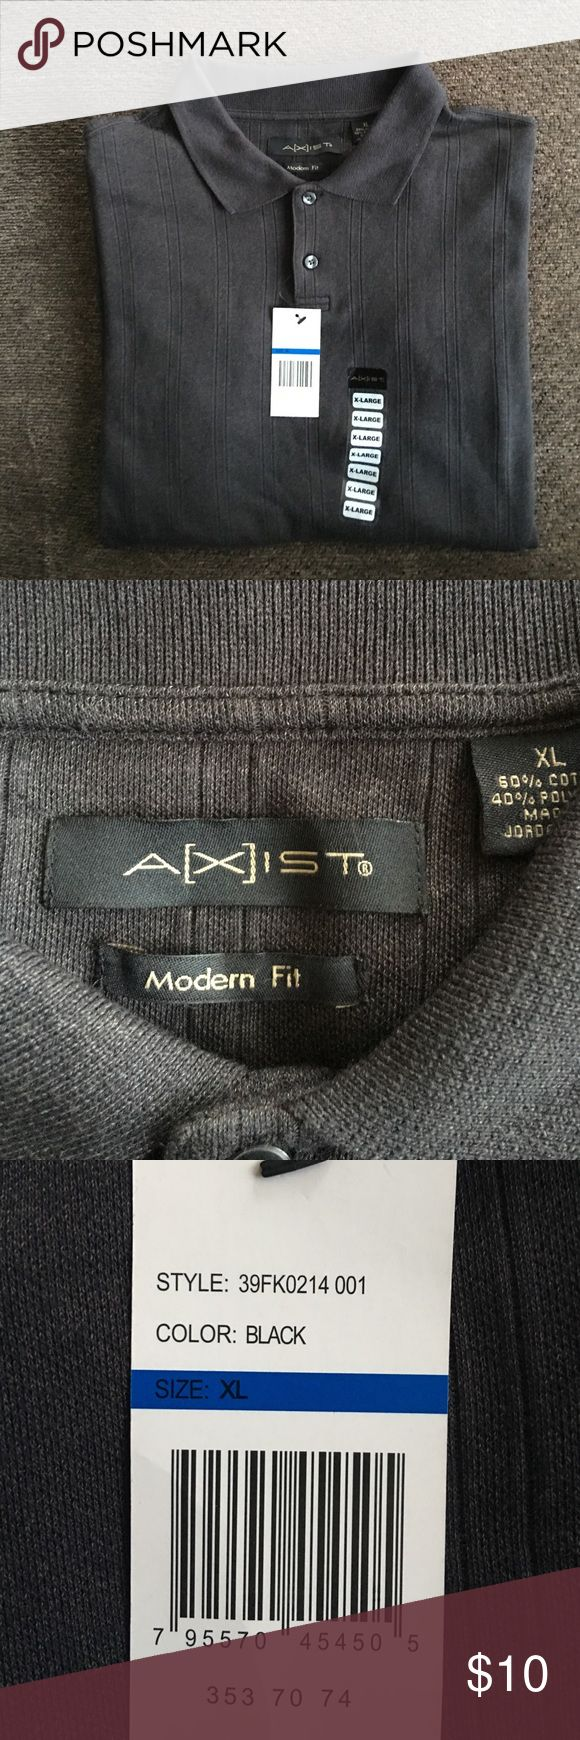 NWT Axist Men's Long Sleeve Polo Brand New Axist Men's Long Sleeve Polo - New With Tags - Modern Fit - 60% Cotton, 40% Polyester - Color: Black Axist Shirts Polos